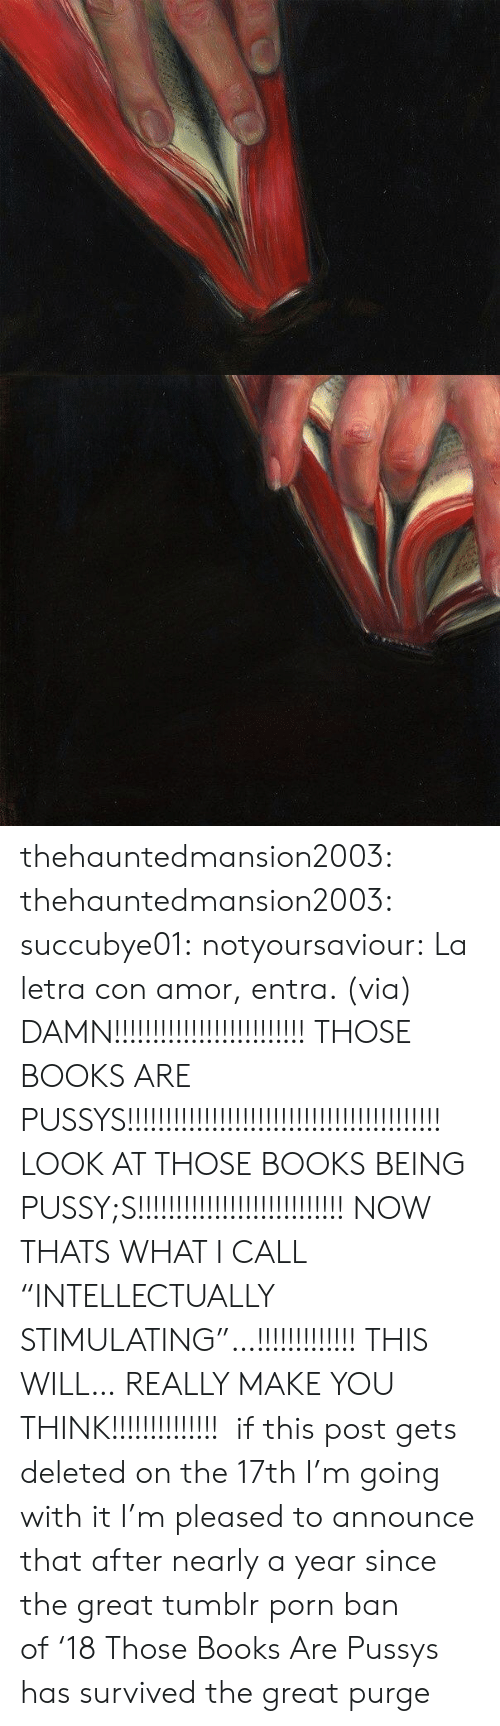 """Books, Facebook, and Pussy: thehauntedmansion2003:  thehauntedmansion2003:  succubye01:  notyoursaviour:  La letra con amor, entra. (via)  DAMN!!!!!!!!!!!!!!!!!!!!!!!!! THOSE BOOKS ARE PUSSYS!!!!!!!!!!!!!!!!!!!!!!!!!!!!!!!!!!!!!!!!! LOOK AT THOSE BOOKS BEING PUSSY;S!!!!!!!!!!!!!!!!!!!!!!!!!!! NOW THATS WHAT I CALL """"INTELLECTUALLY STIMULATING""""…!!!!!!!!!!!!! THIS WILL… REALLY MAKE YOU THINK!!!!!!!!!!!!!!  if this post gets deleted on the 17th I'm going with it  I'm pleased to announce that after nearly a year since the great tumblr porn ban of'18 Those Books Are Pussys has survived the great purge"""